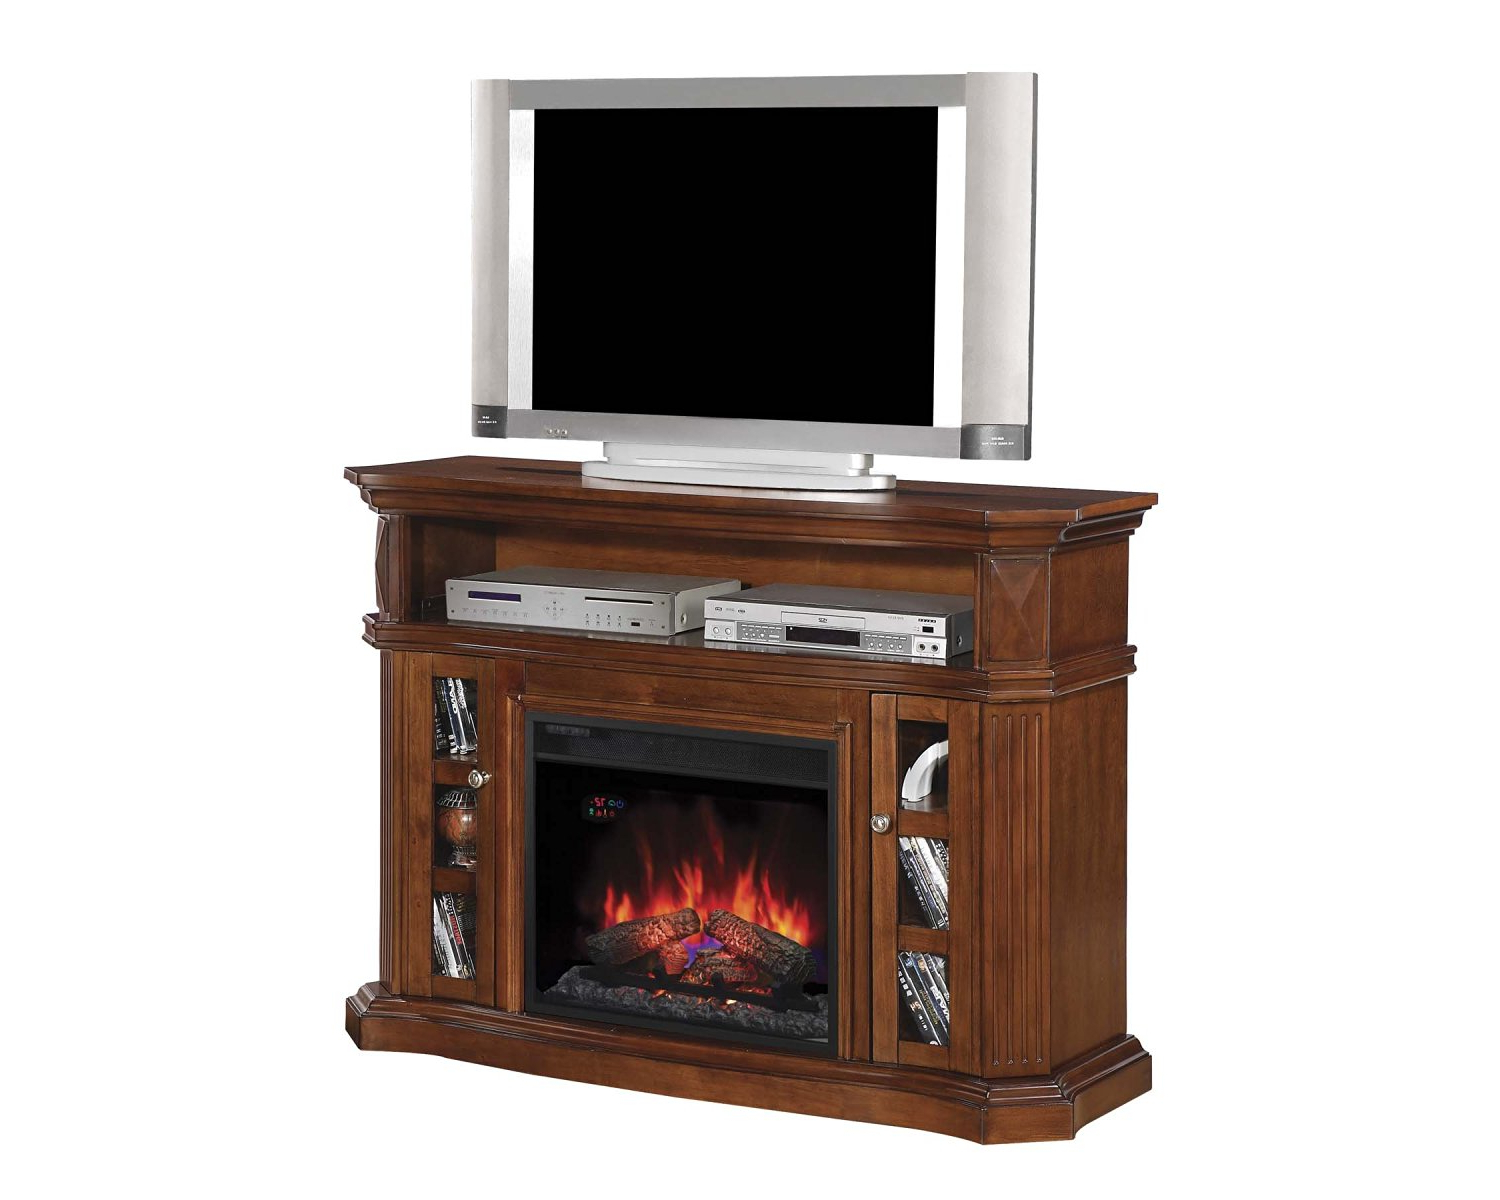 Fashionable Buy Classicflame 26Mms9626 Nw145 Enterprise Tv Stand With Speakers Within Dixon White 65 Inch Tv Stands (Gallery 16 of 20)